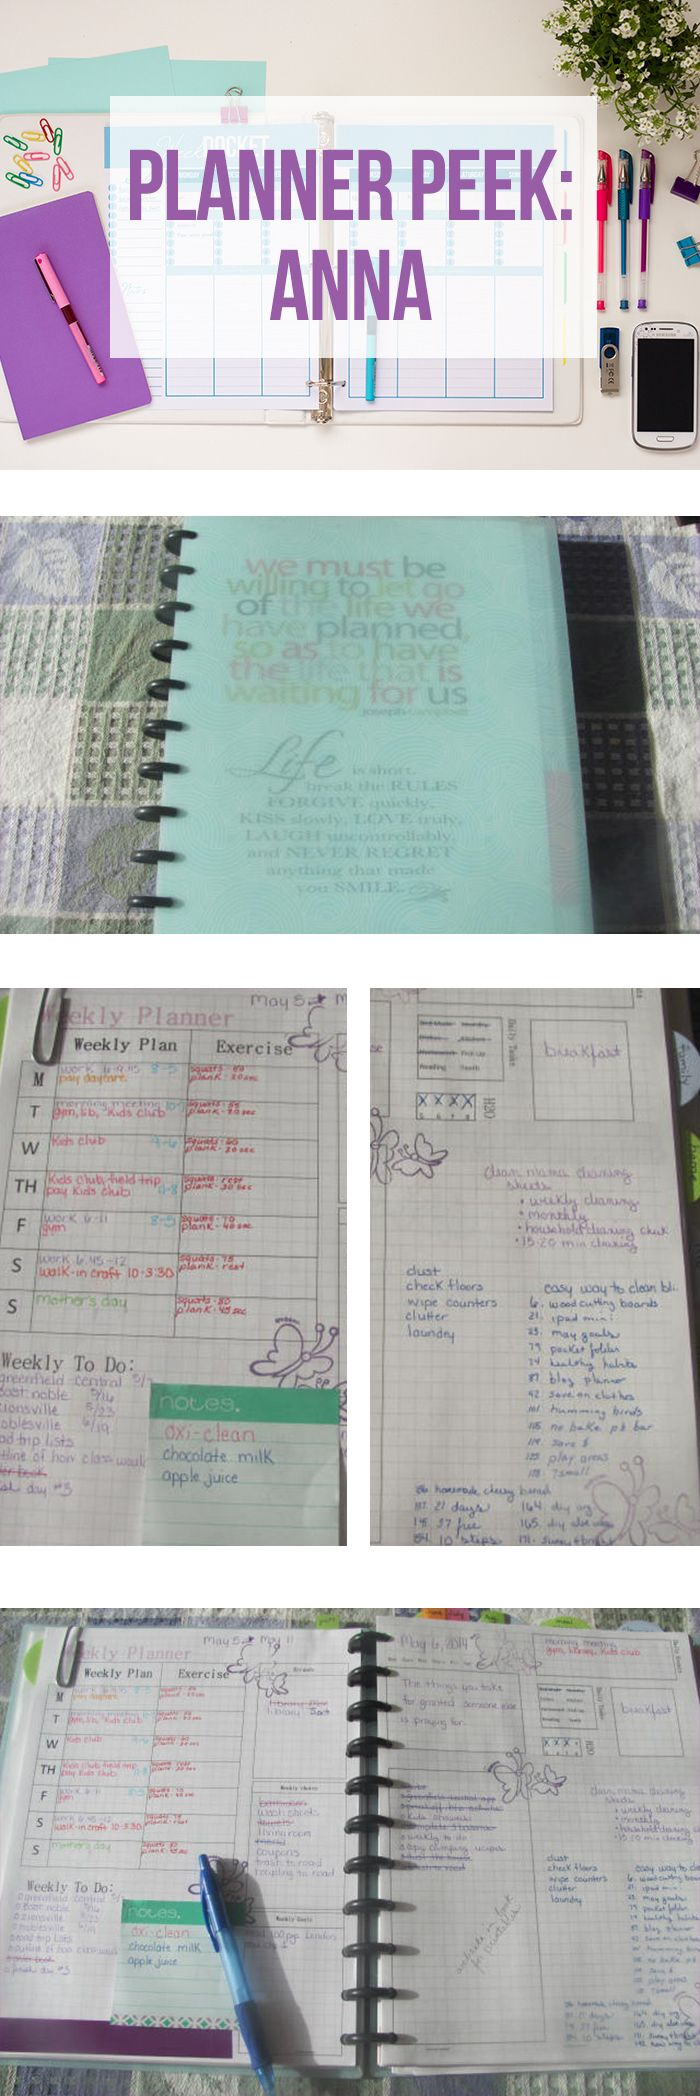 Take a tour of Anna's Planner